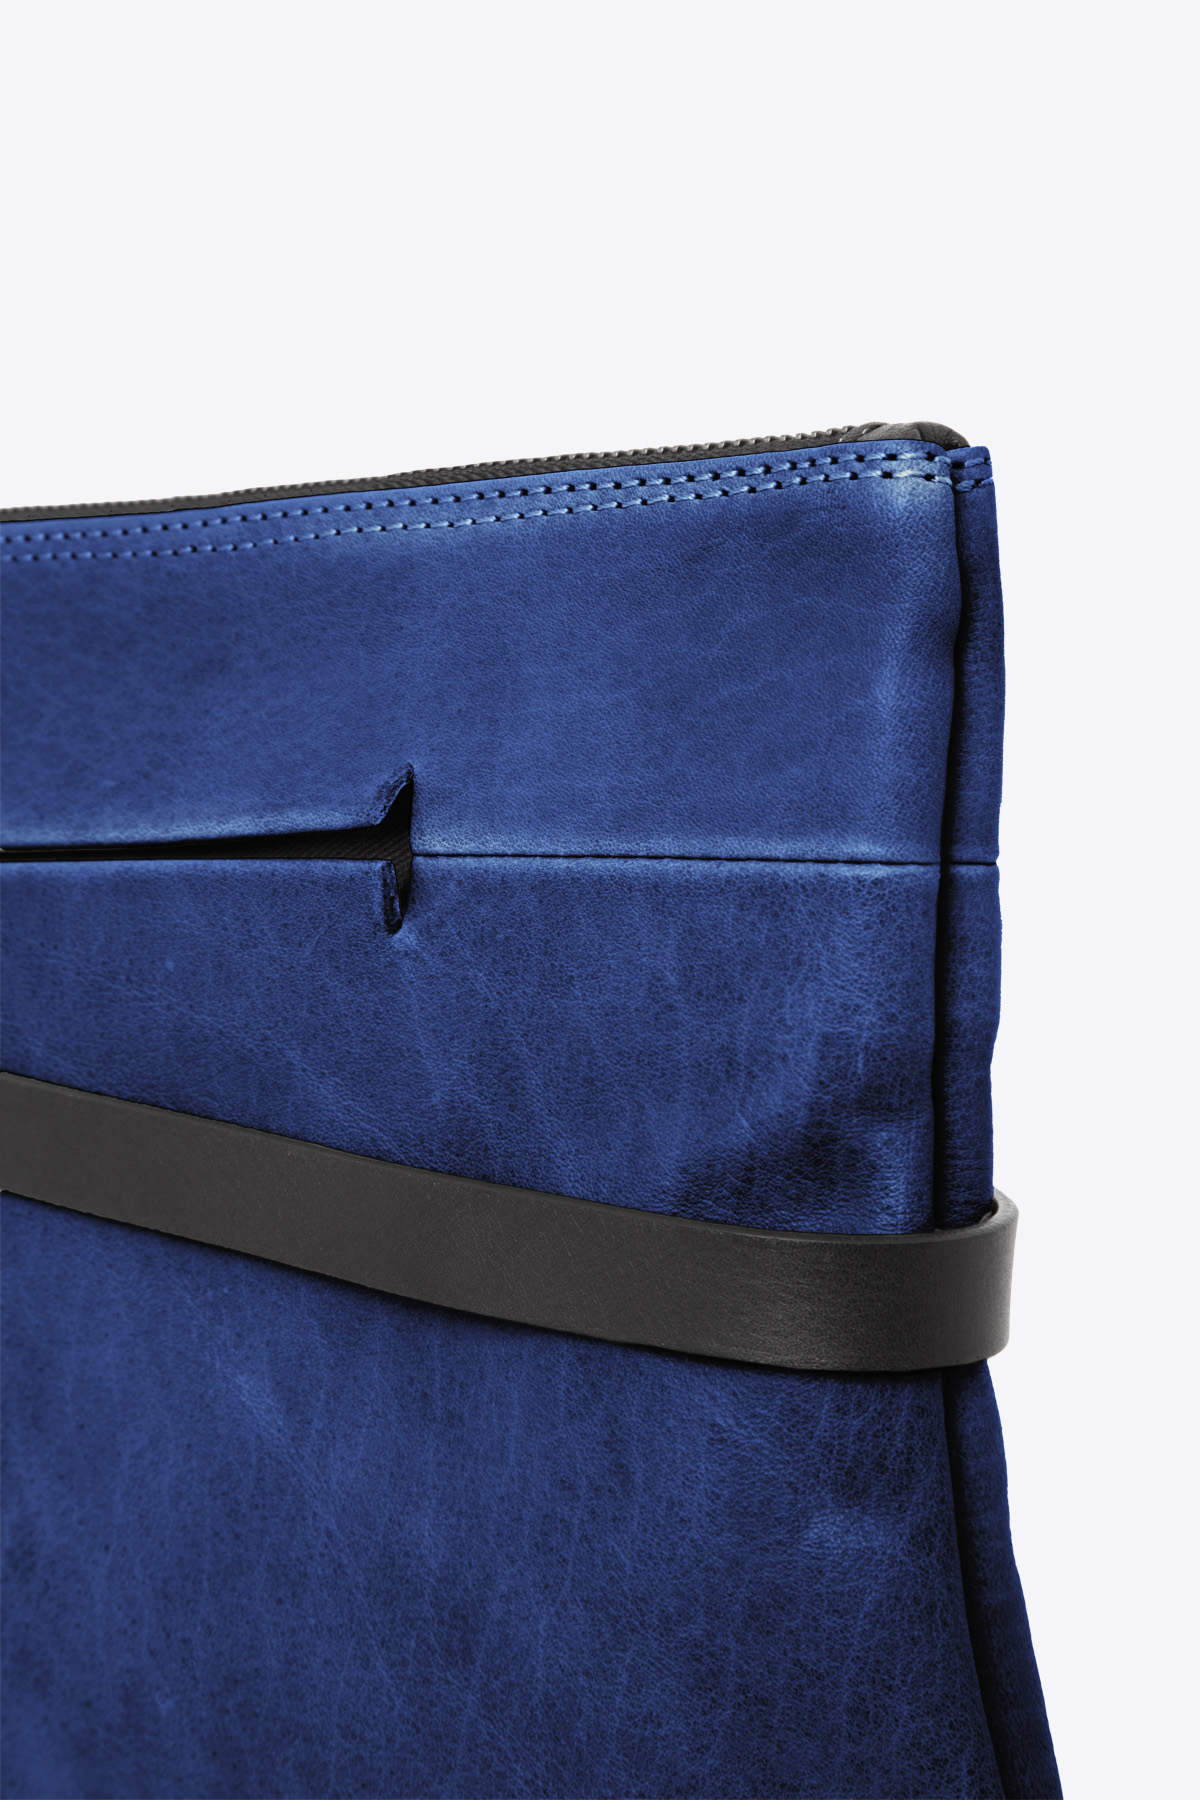 dclr004l-tapeclutch-a20-royalblue-detail